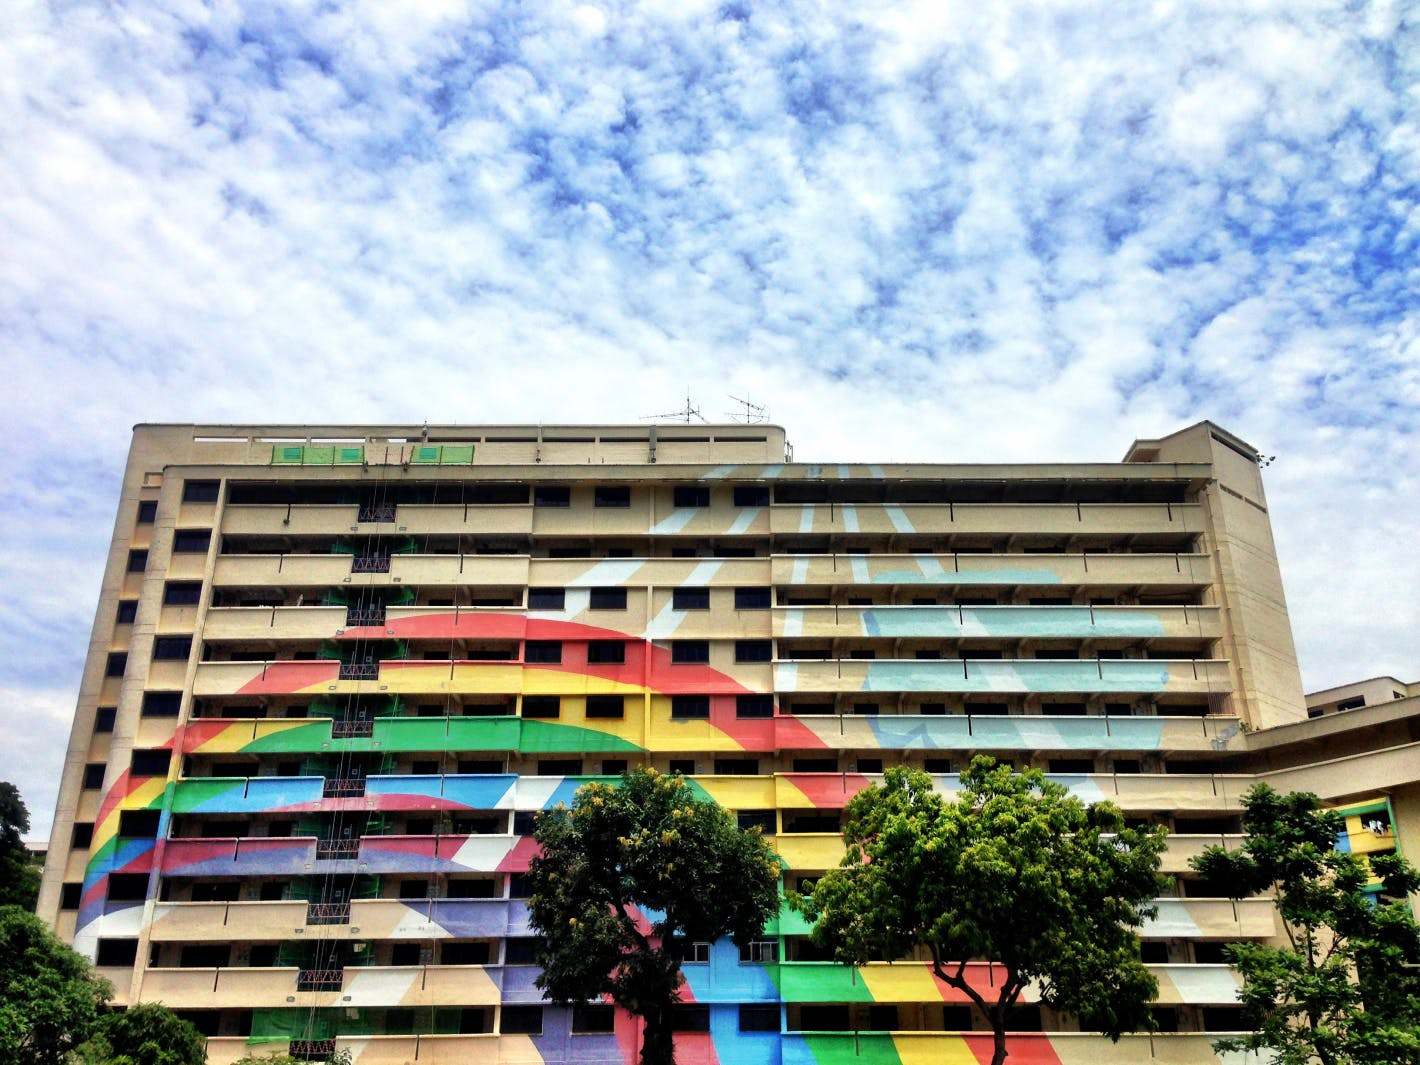 Defining rainbow at Hougang New Town.